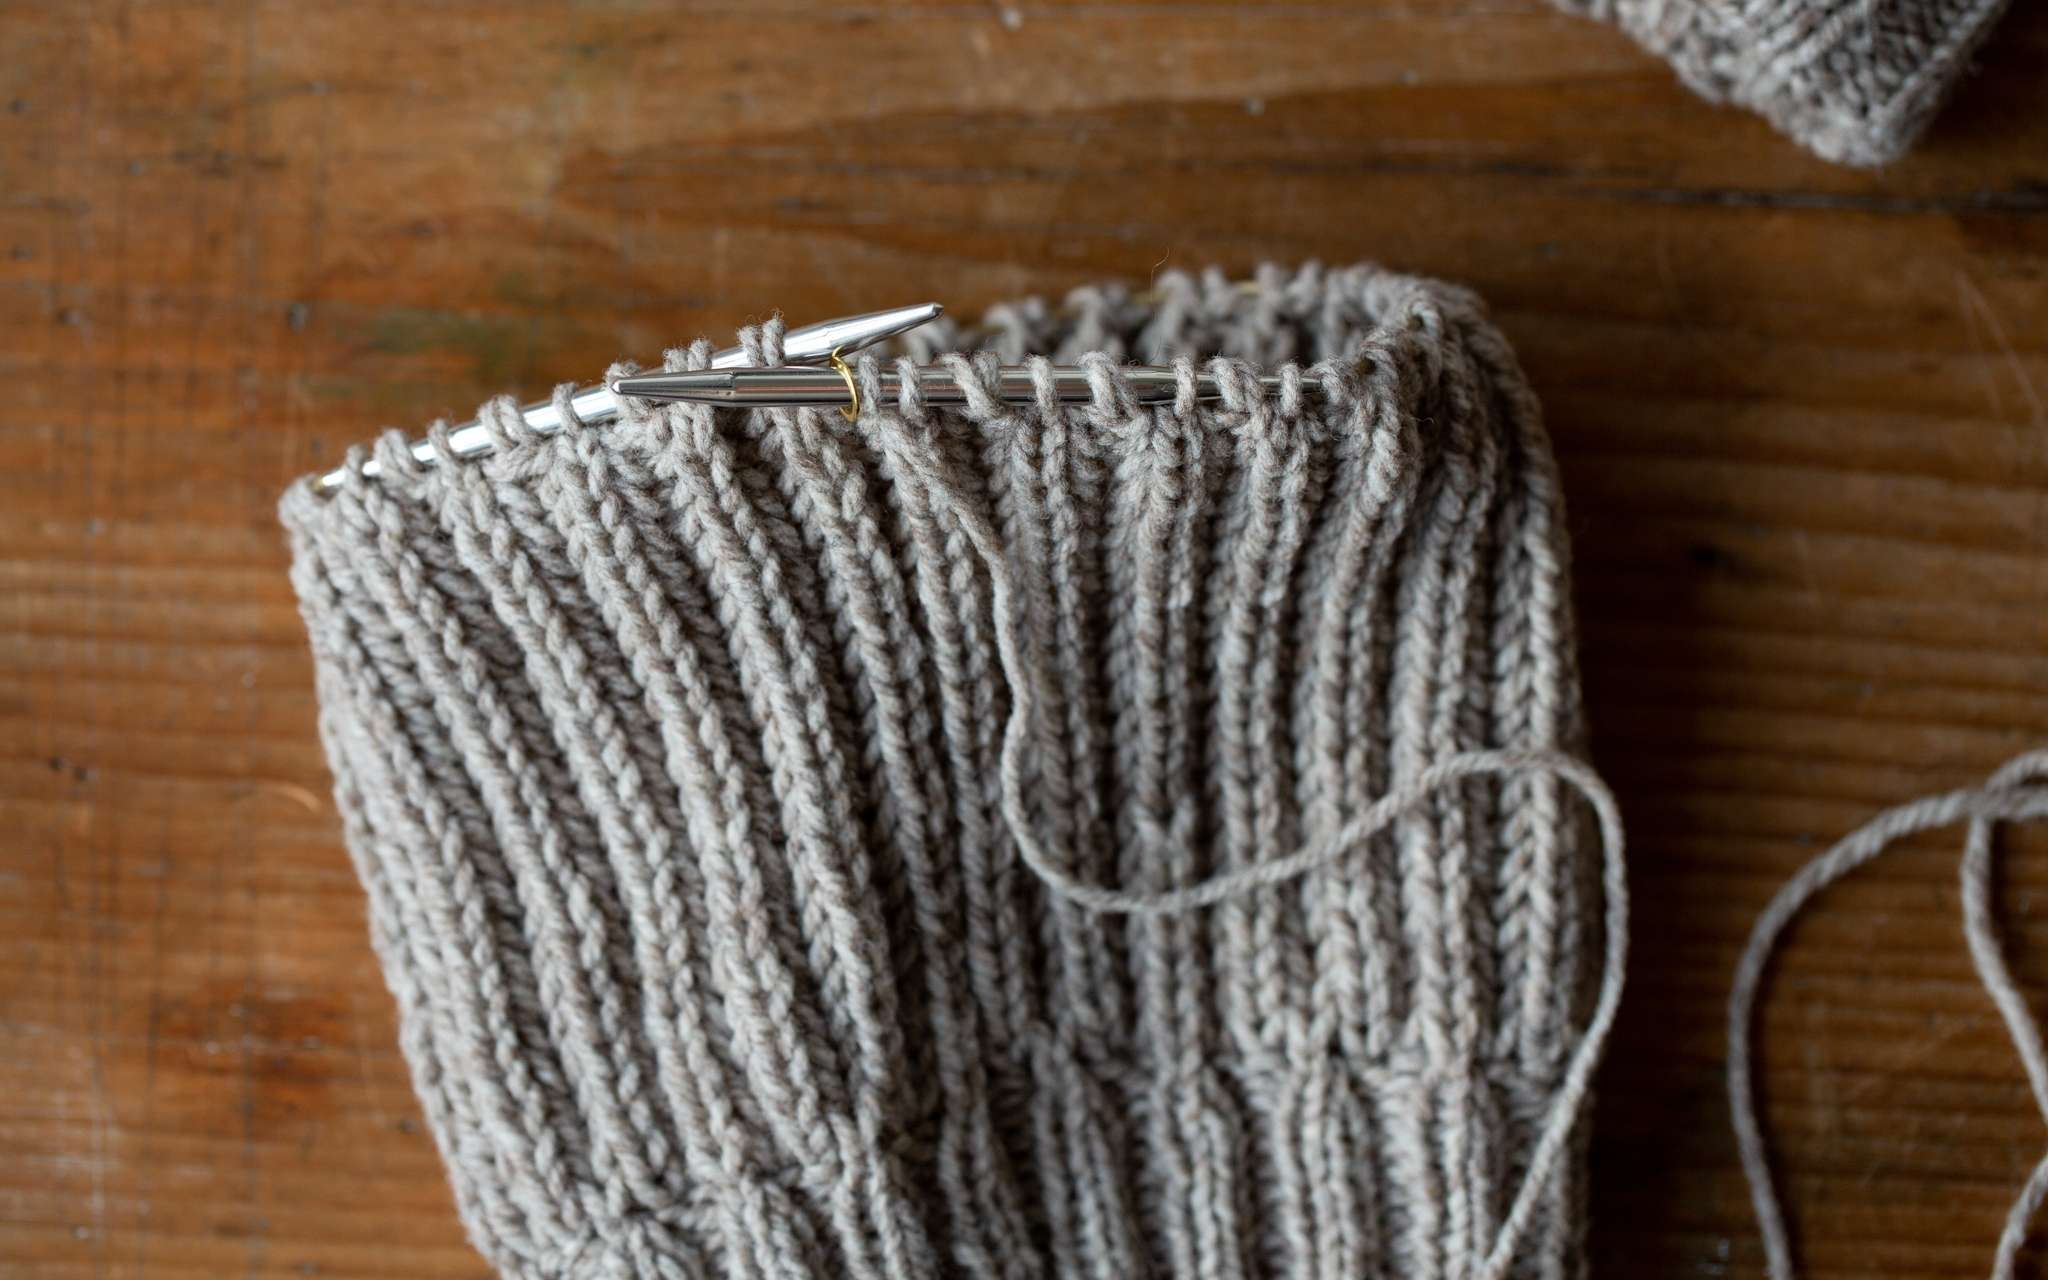 A hat in progress knitted in a brioche stitch, showing the yarn overs created nestled beside their corresponding stitches on the needle.